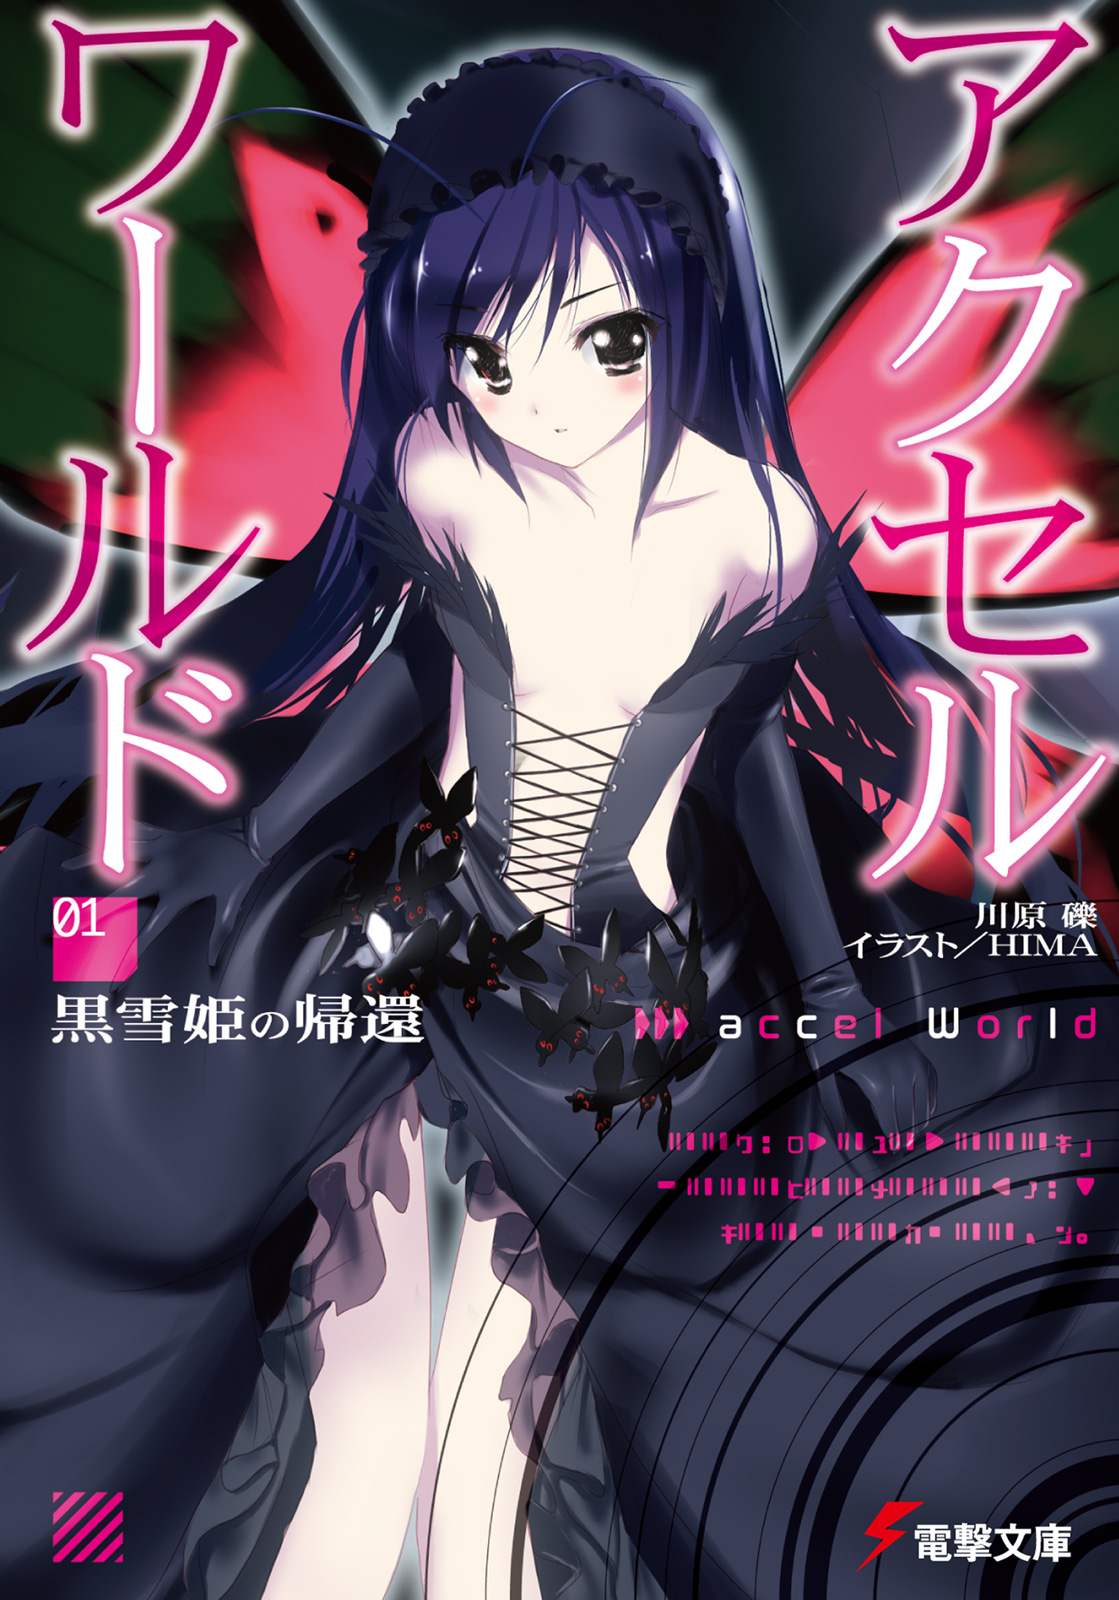 List of Accel World Light Novel Volumes | Accel World Wiki